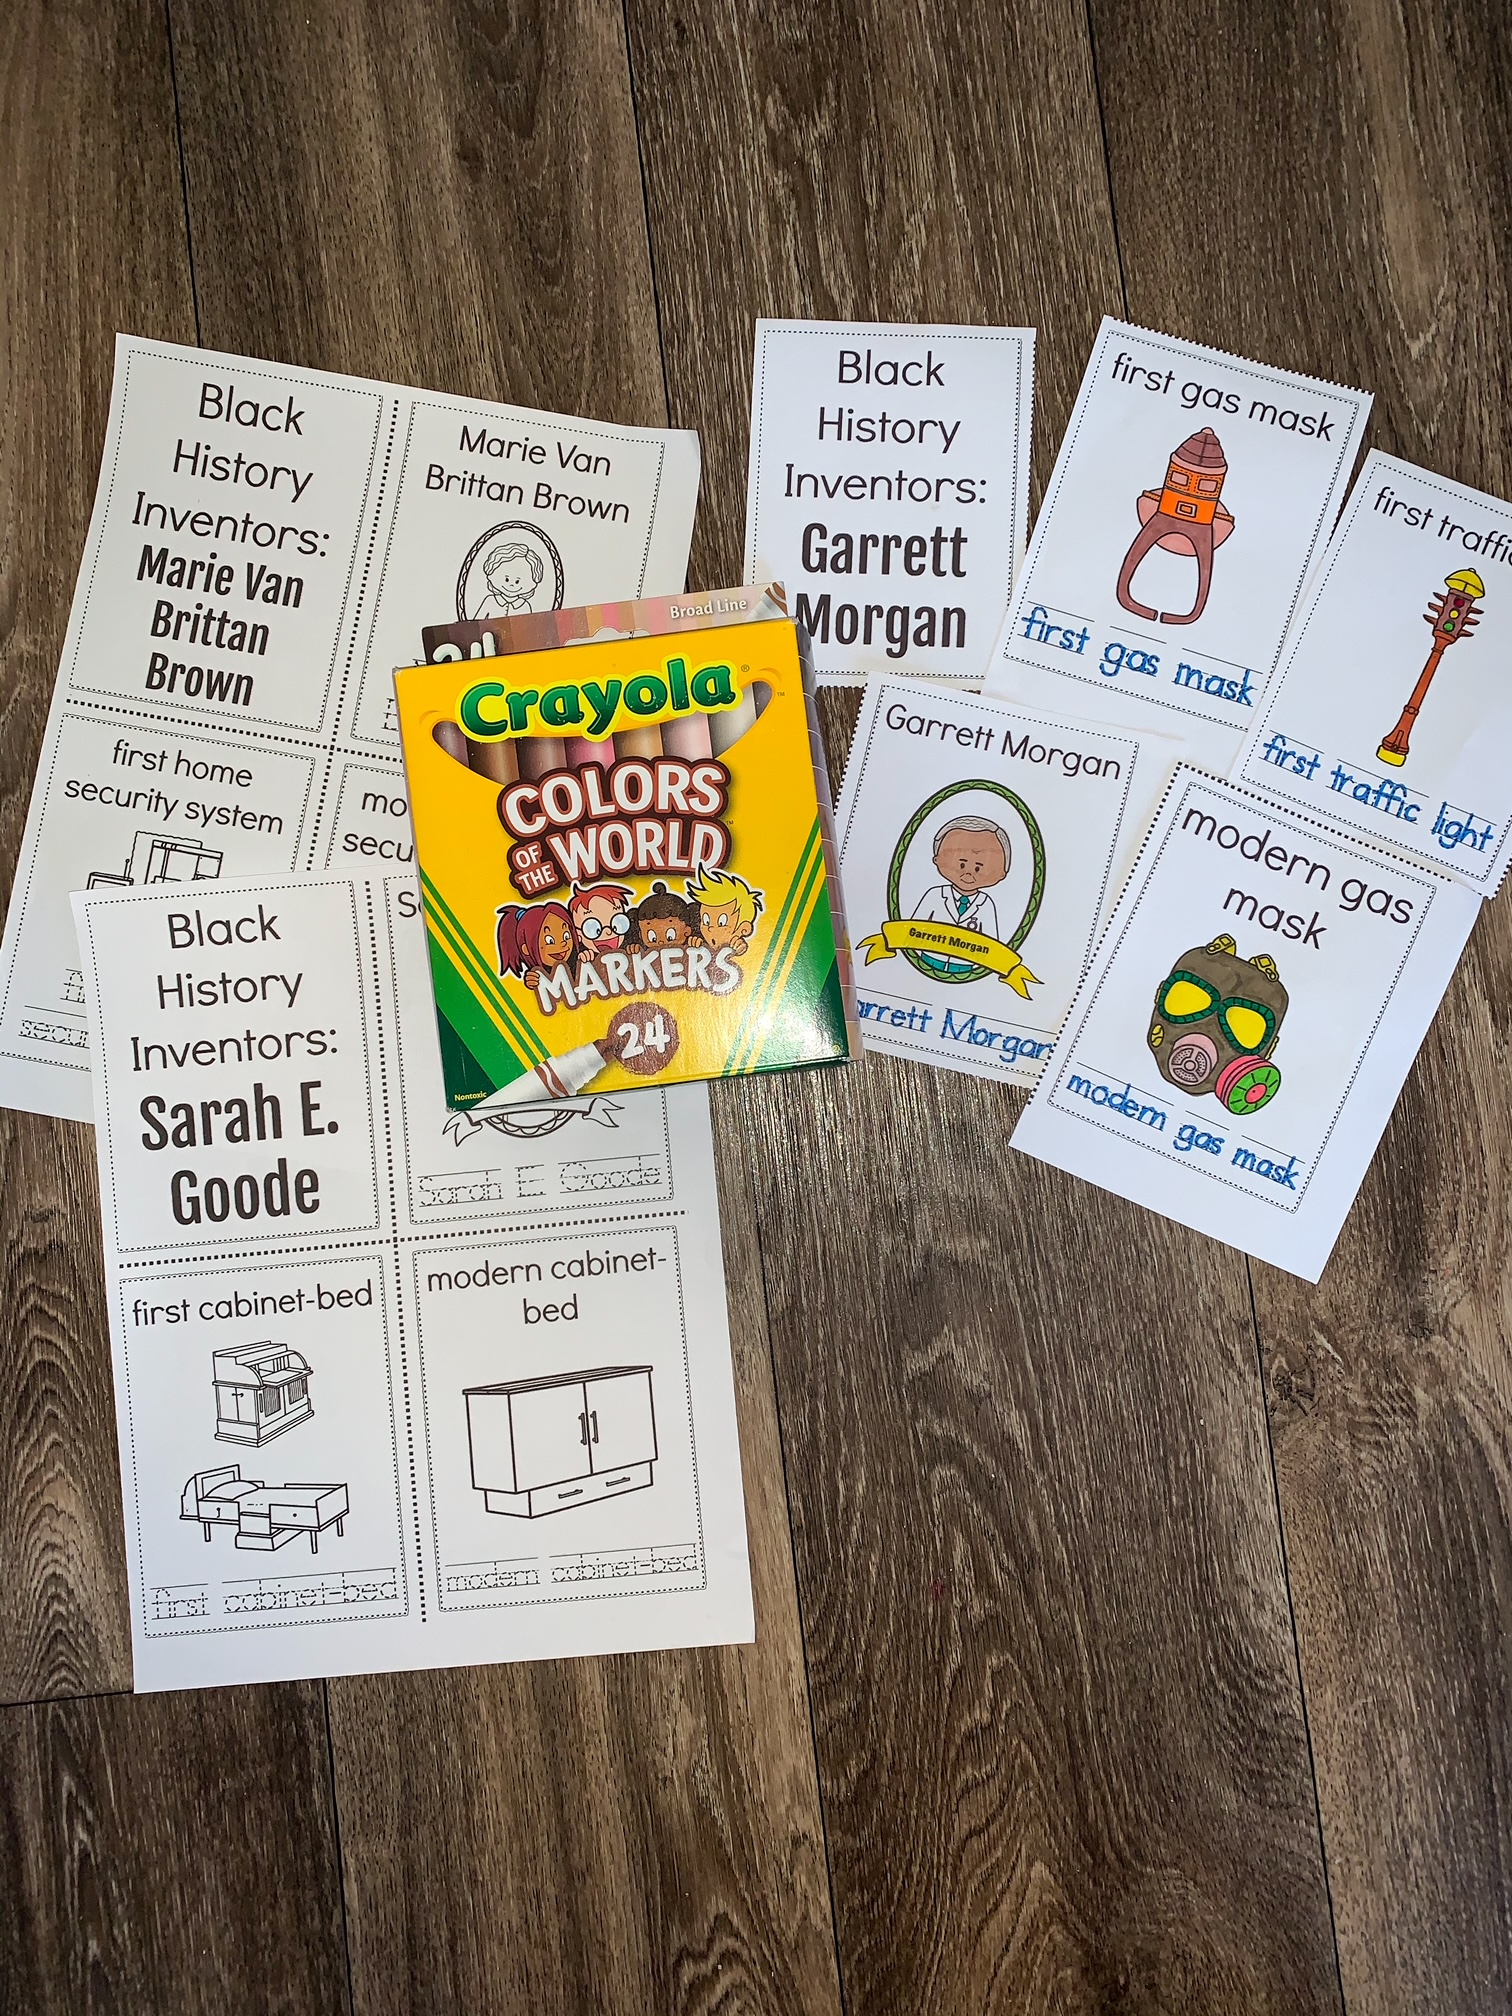 black history inventors booklets